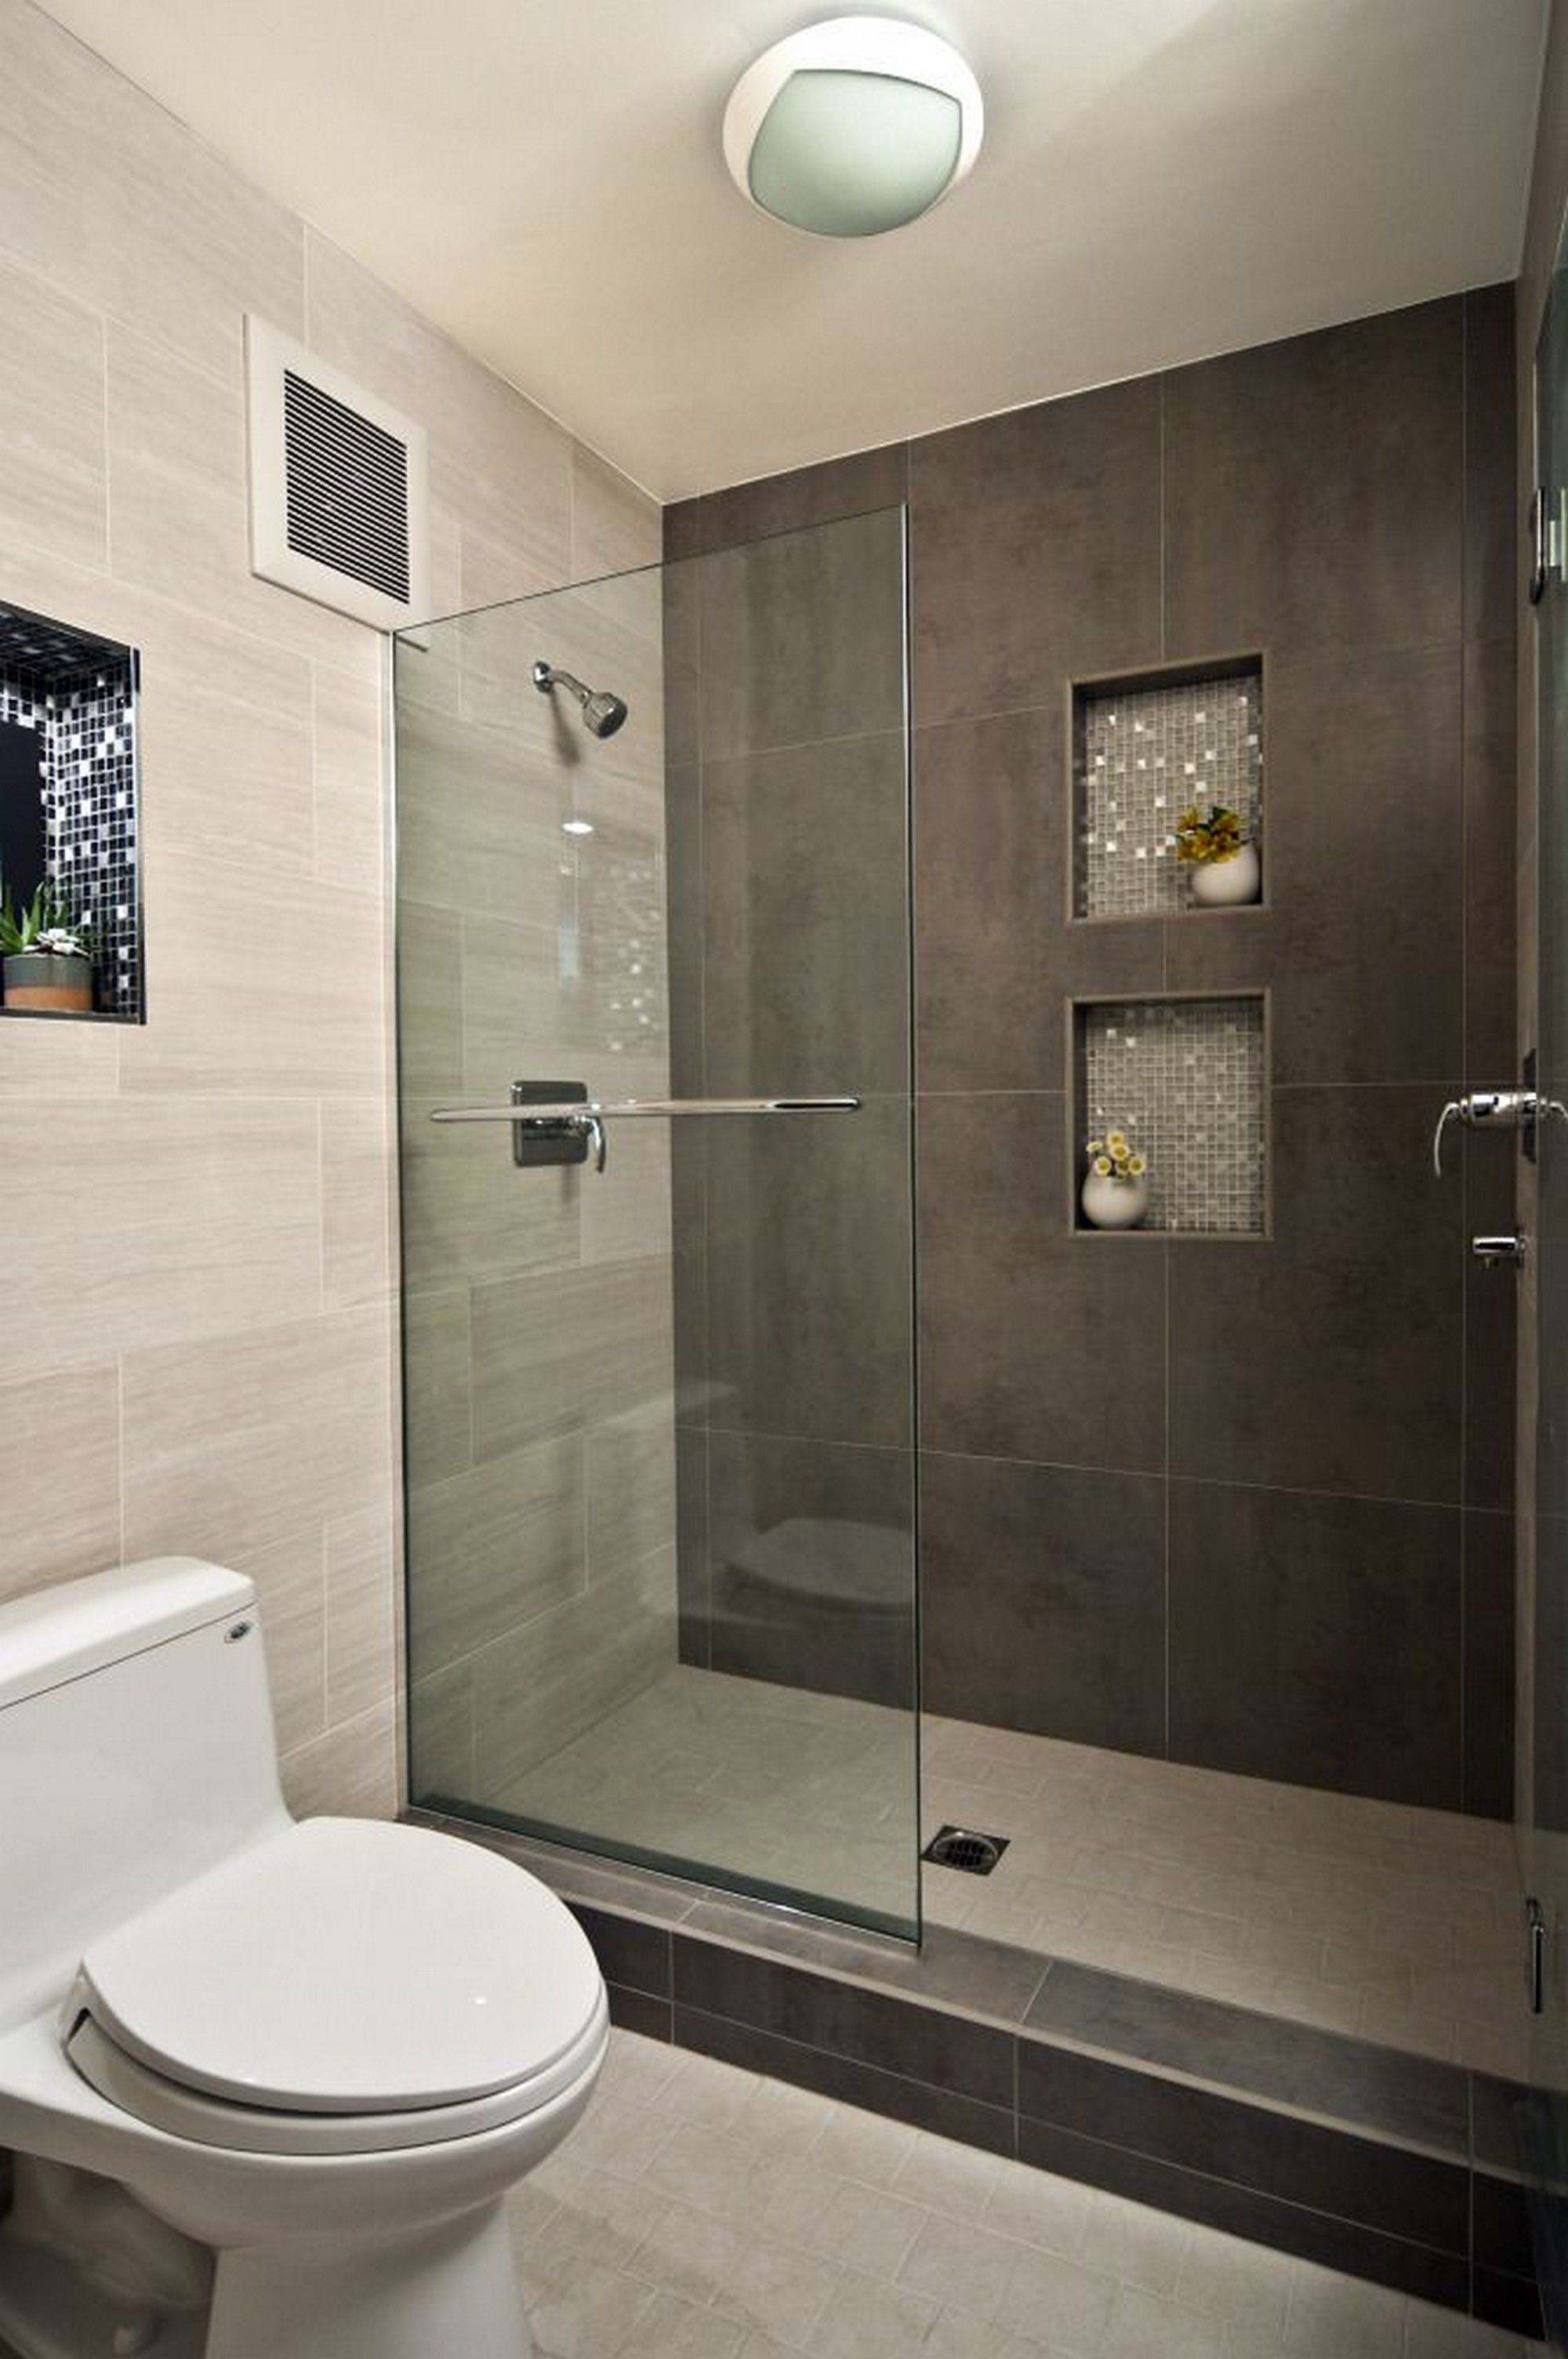 Latest Bathroom Design Luxury Bathroom Master Baths Walk In Shower is agreed important for your  home. Whether you pick the Luxury Master Bathroom Ideas or Luxury Bathroom  Master ...